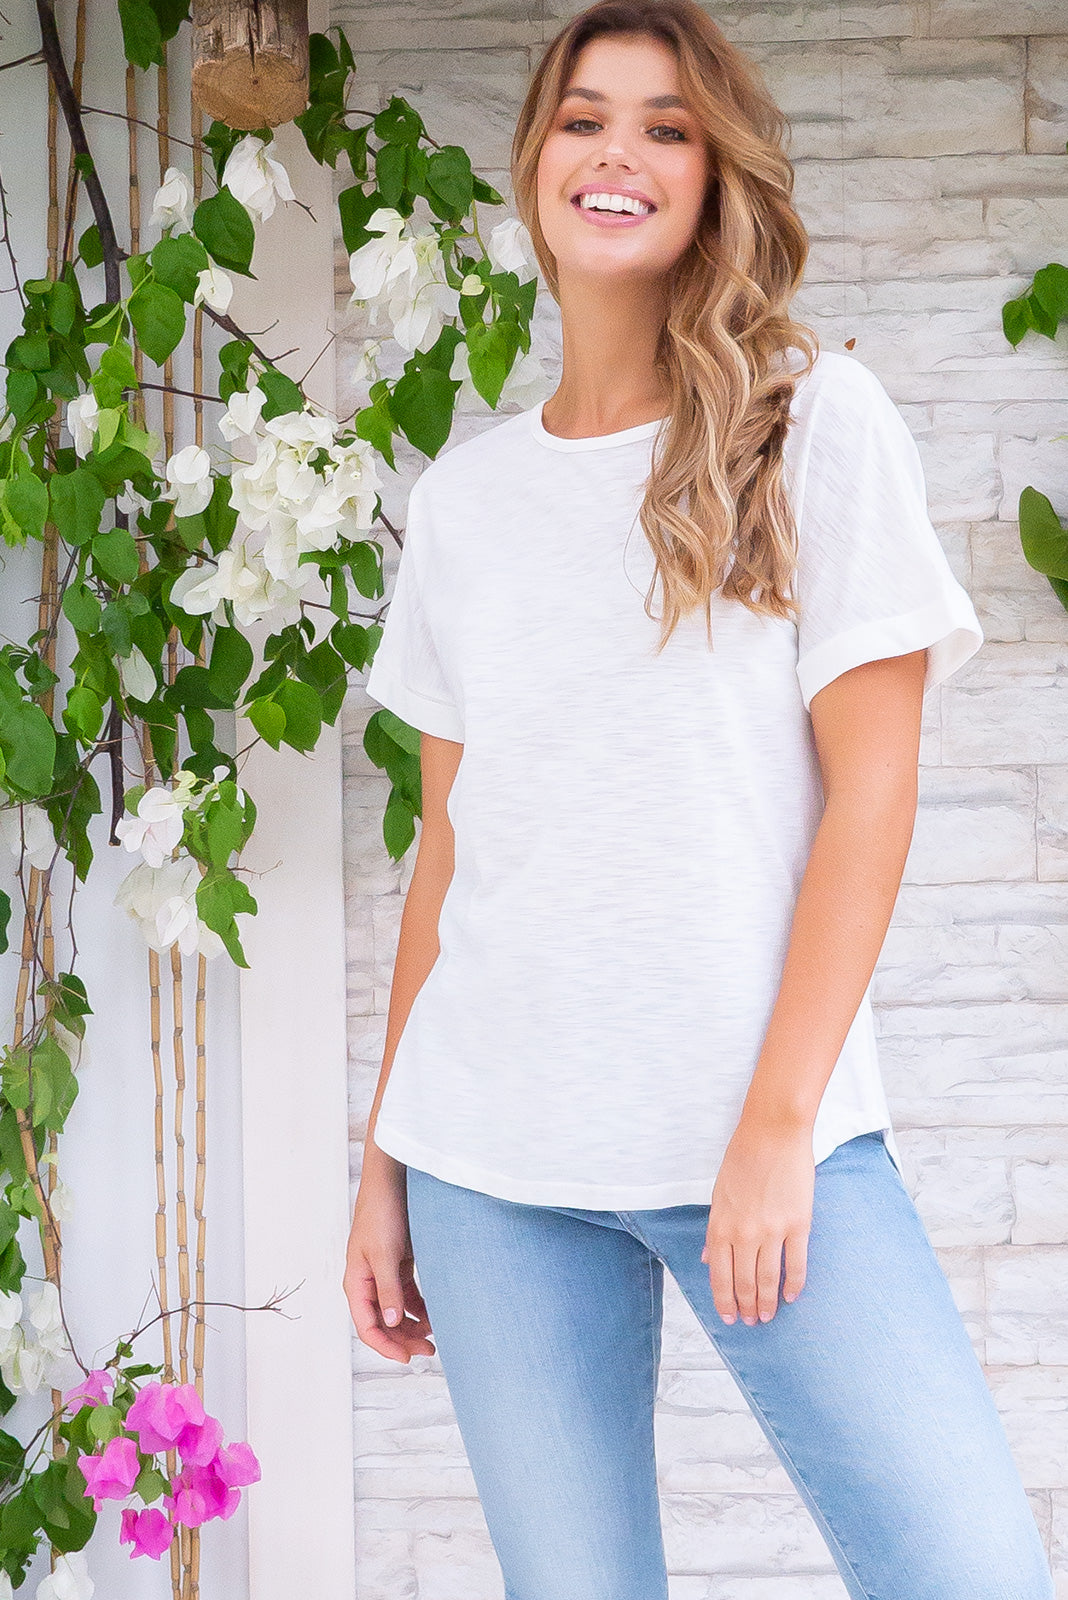 Artemis Tee Pearl White is a classic white T-shirt featuring oversized fit, standard cut, curved at hem, ultra soft & comfortable 60% cotton, 40% polyester material.